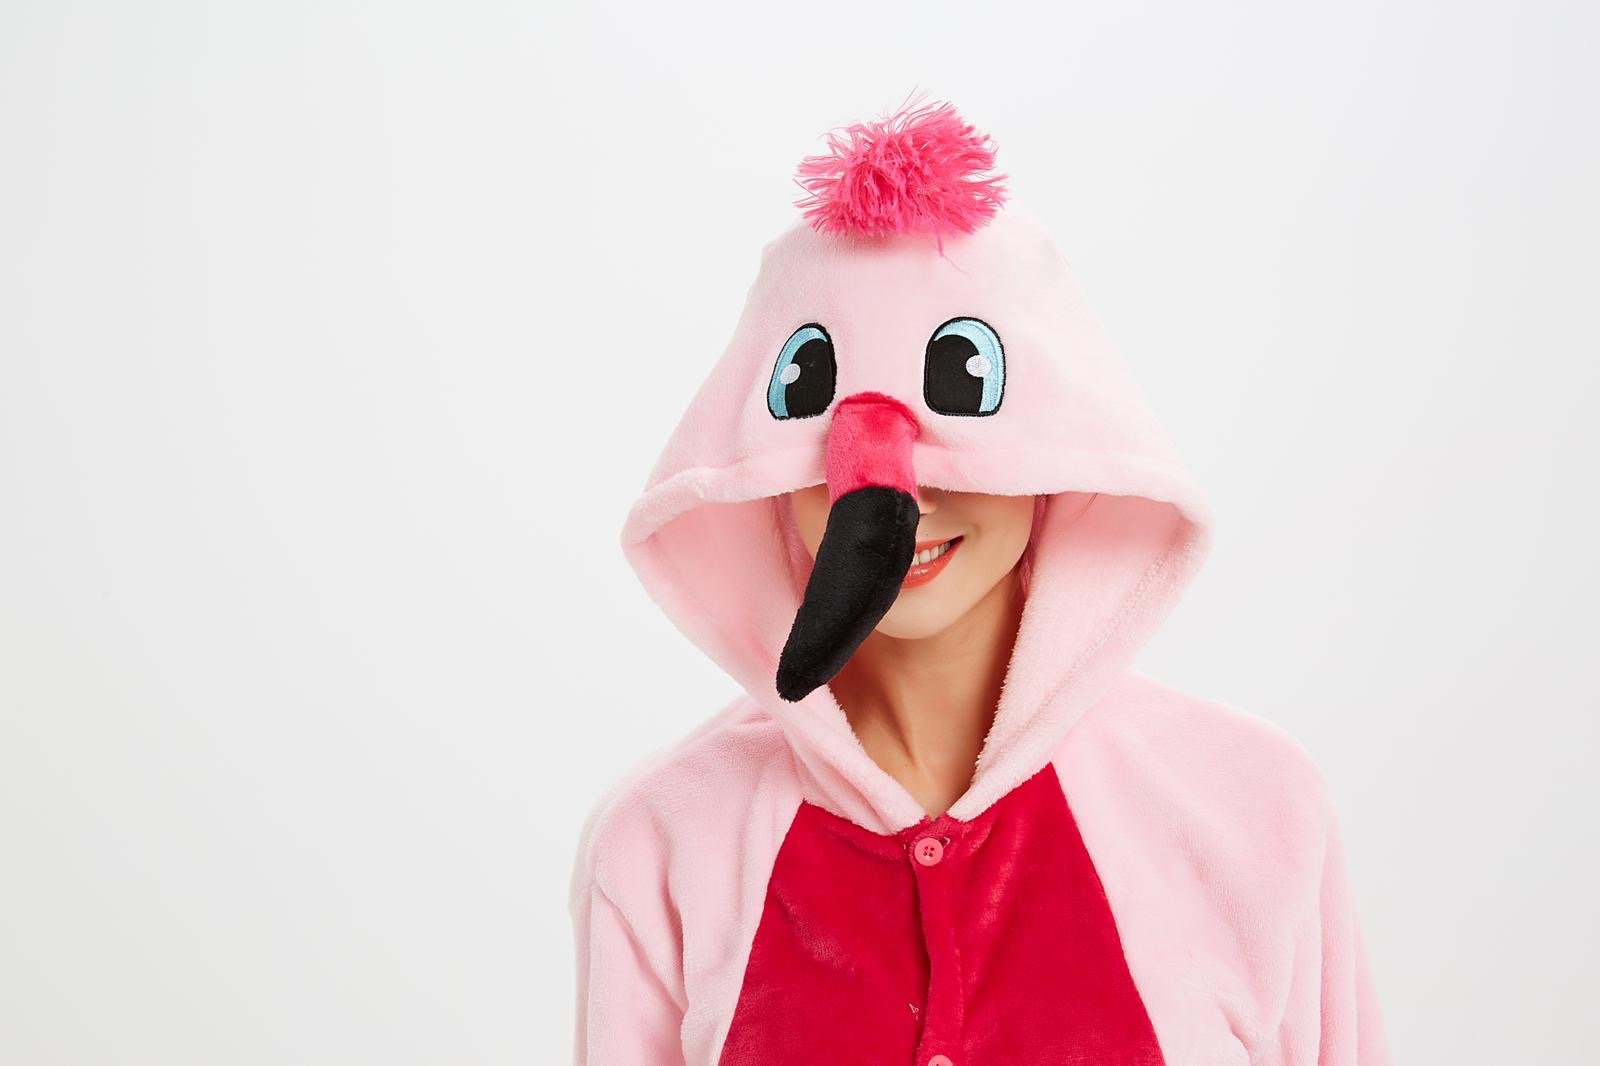 Onesie World Unisex Animal Pyjamas - Pink Flamingo Kids (Cosplay / Nightwear Halloween Carnival